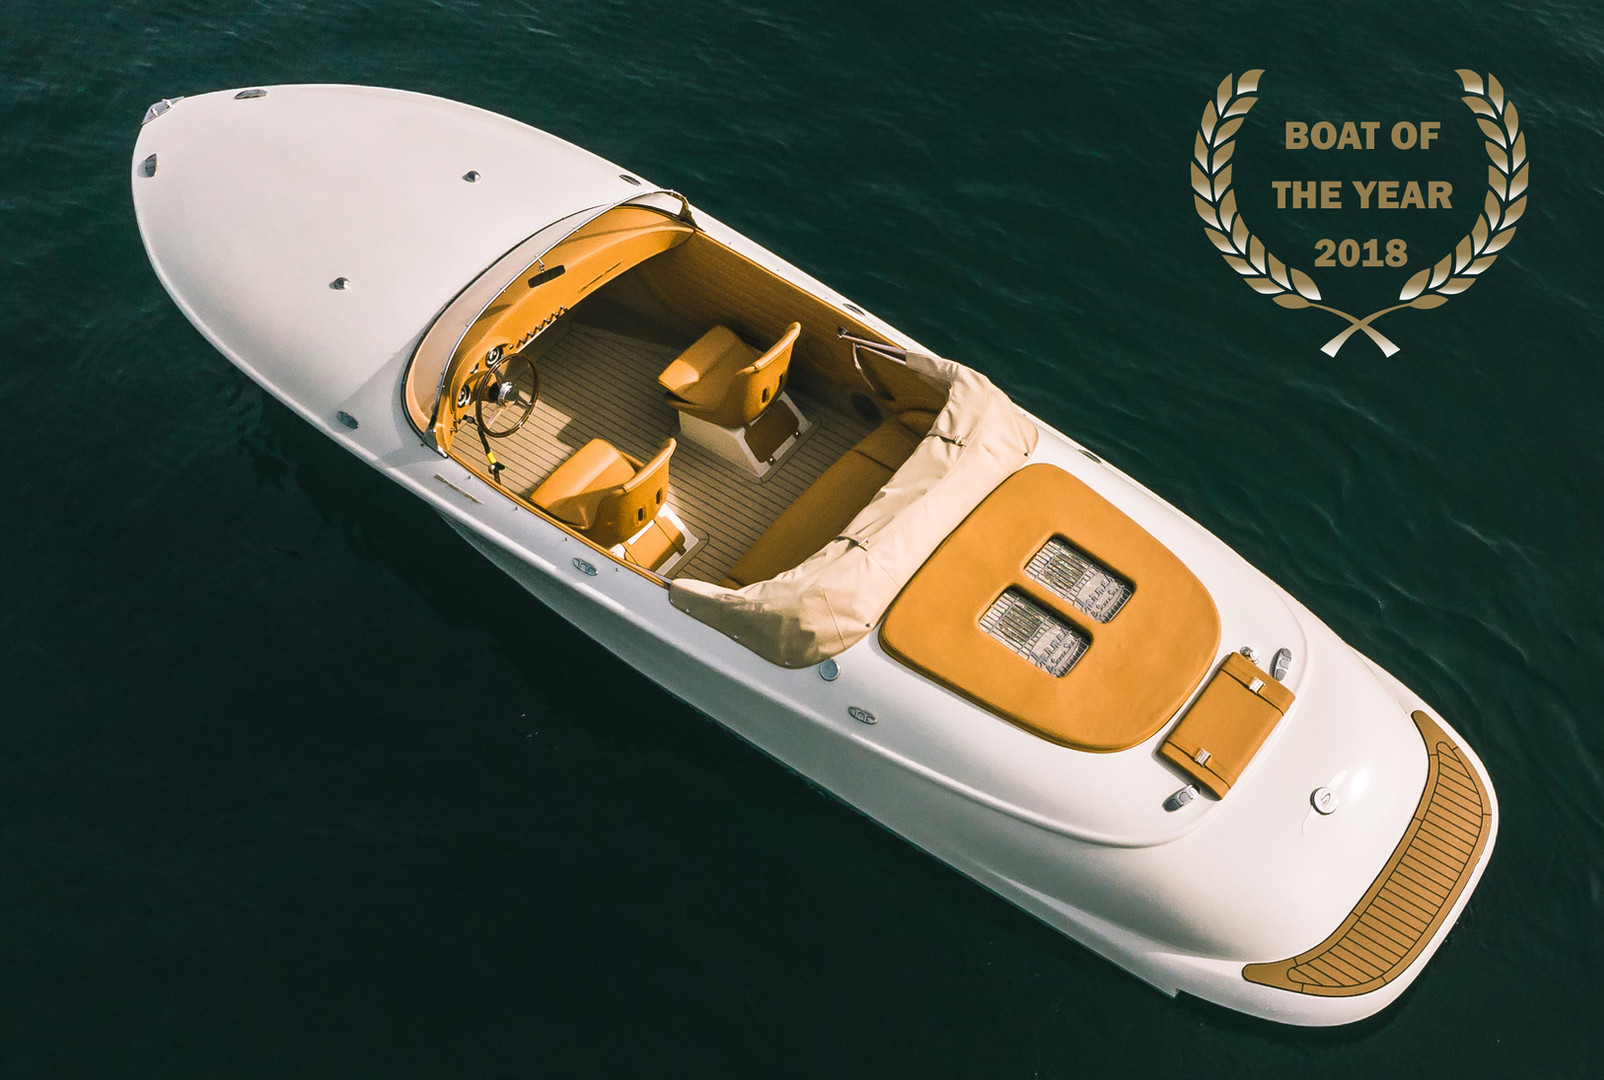 Hermes Speedster - Boat of the Year 2018